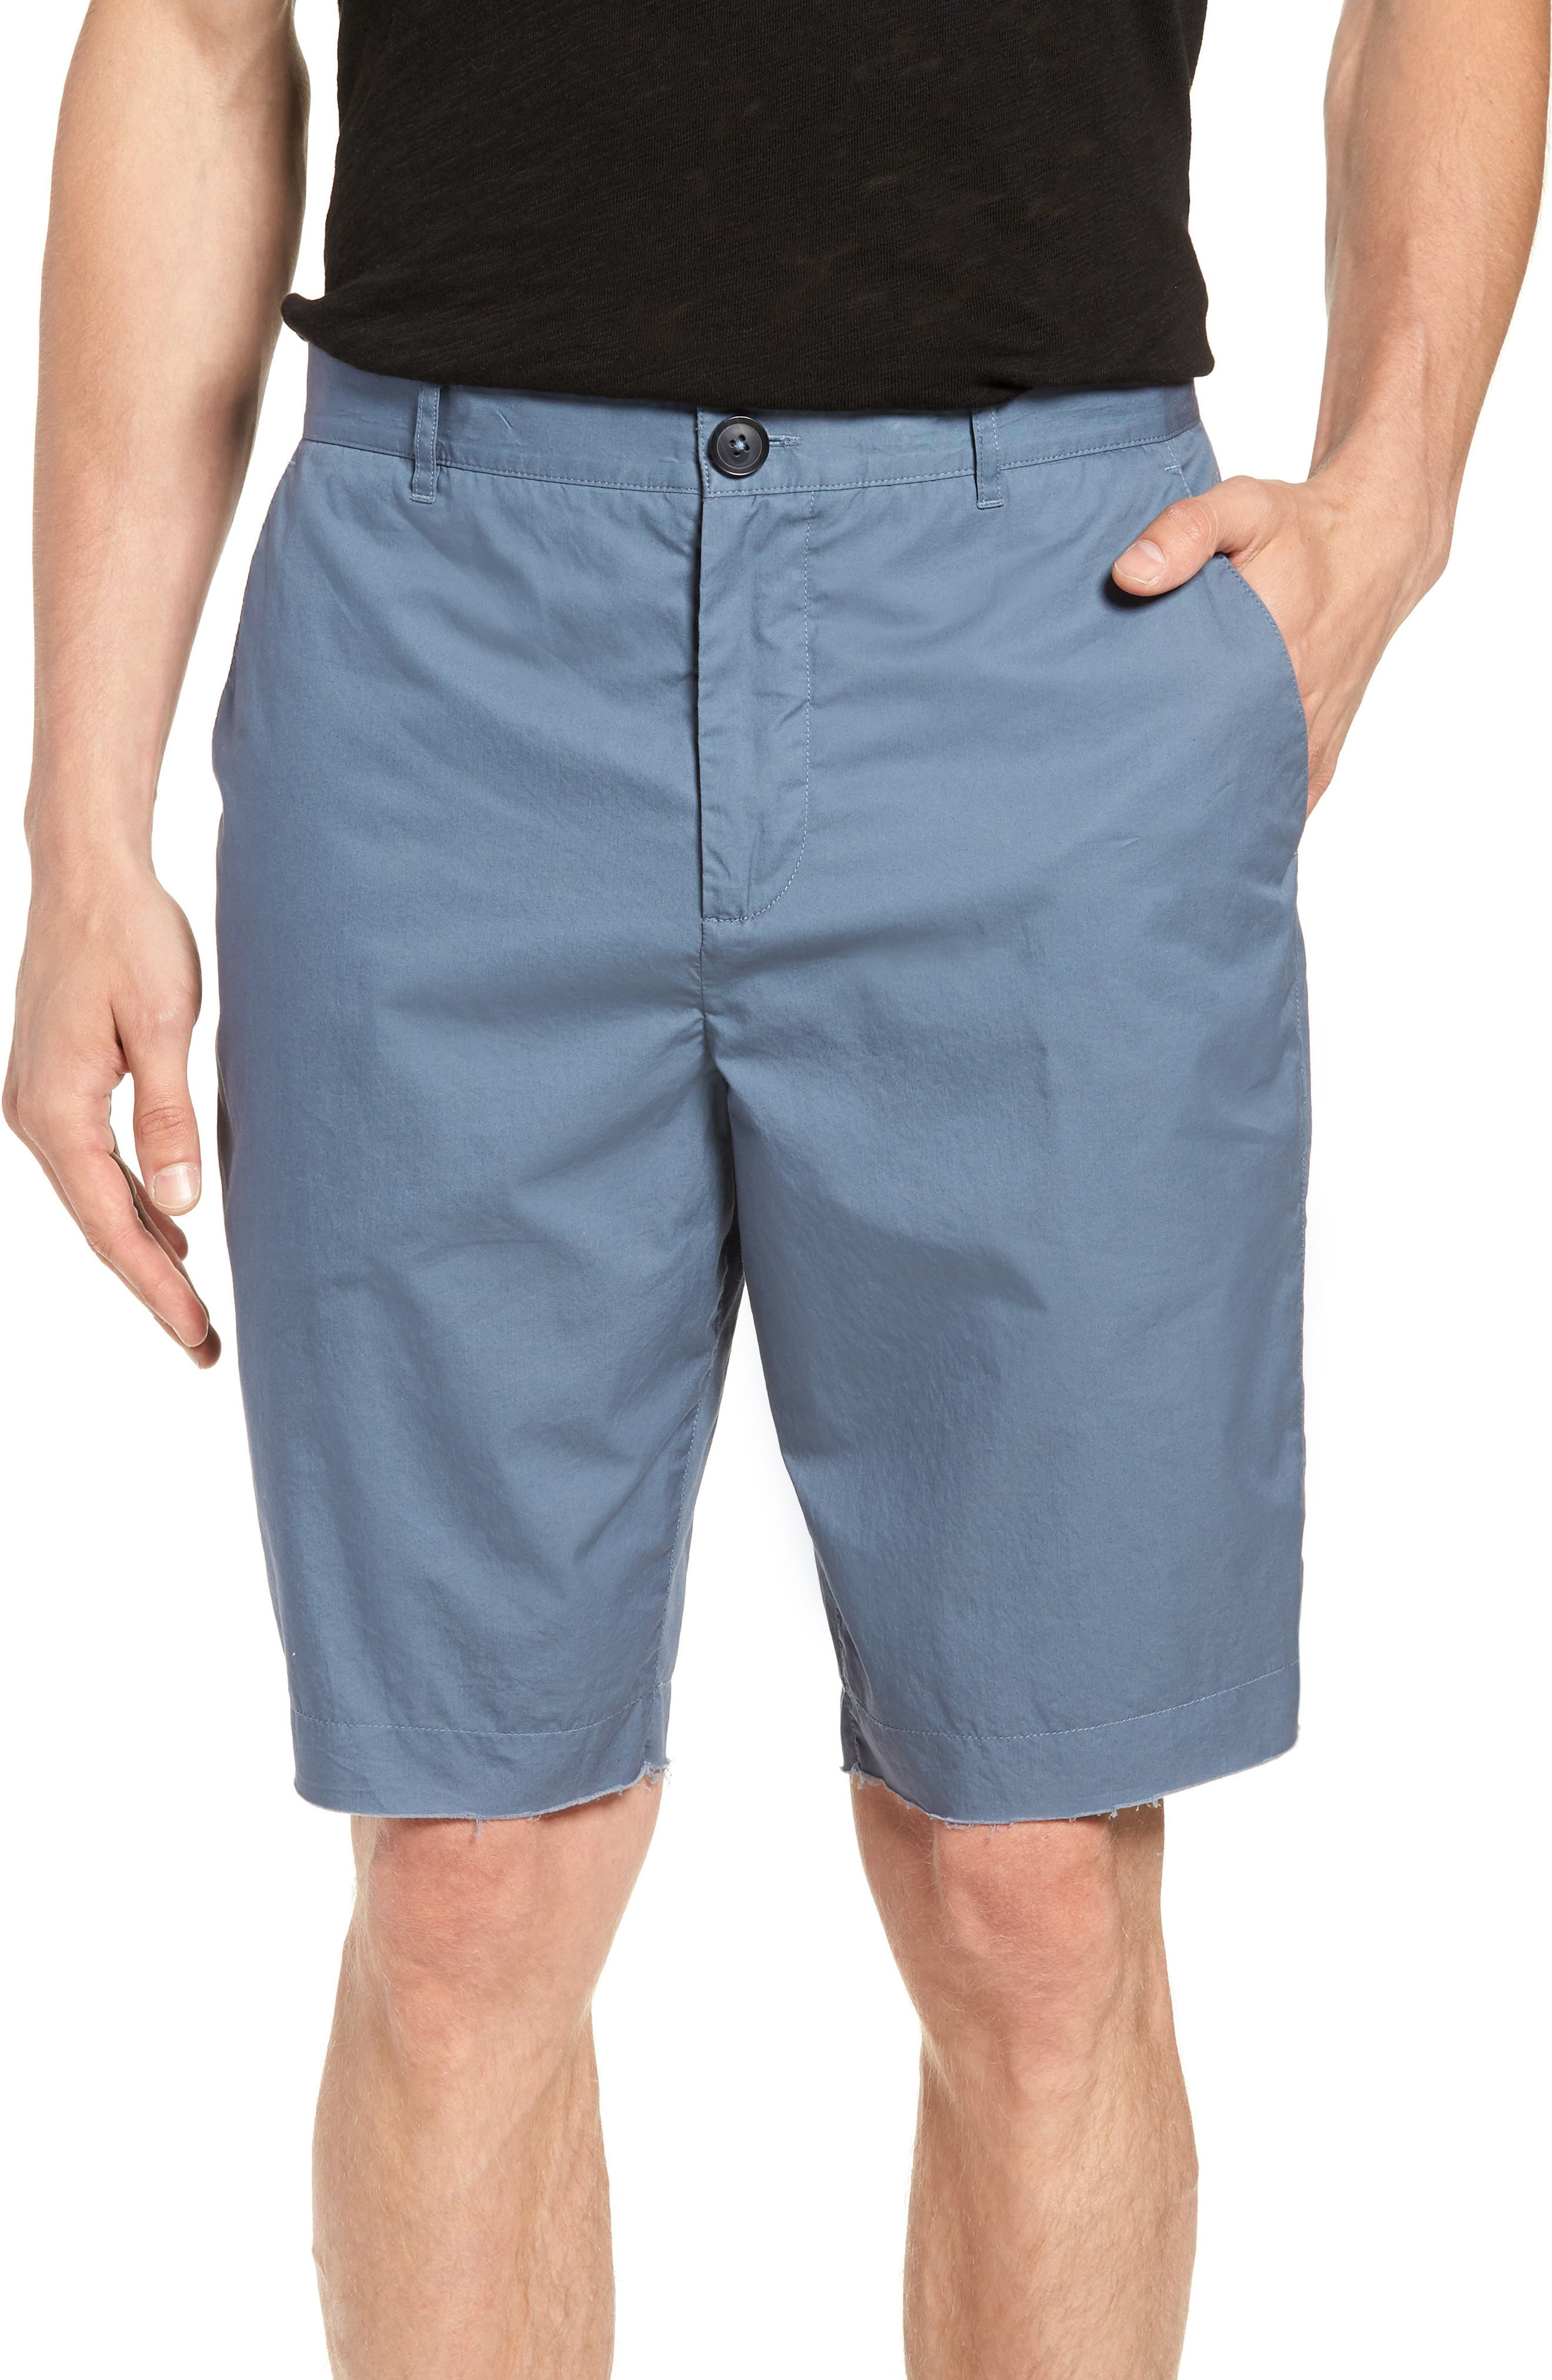 Poplin Cotton Shorts,                         Main,                         color, 425